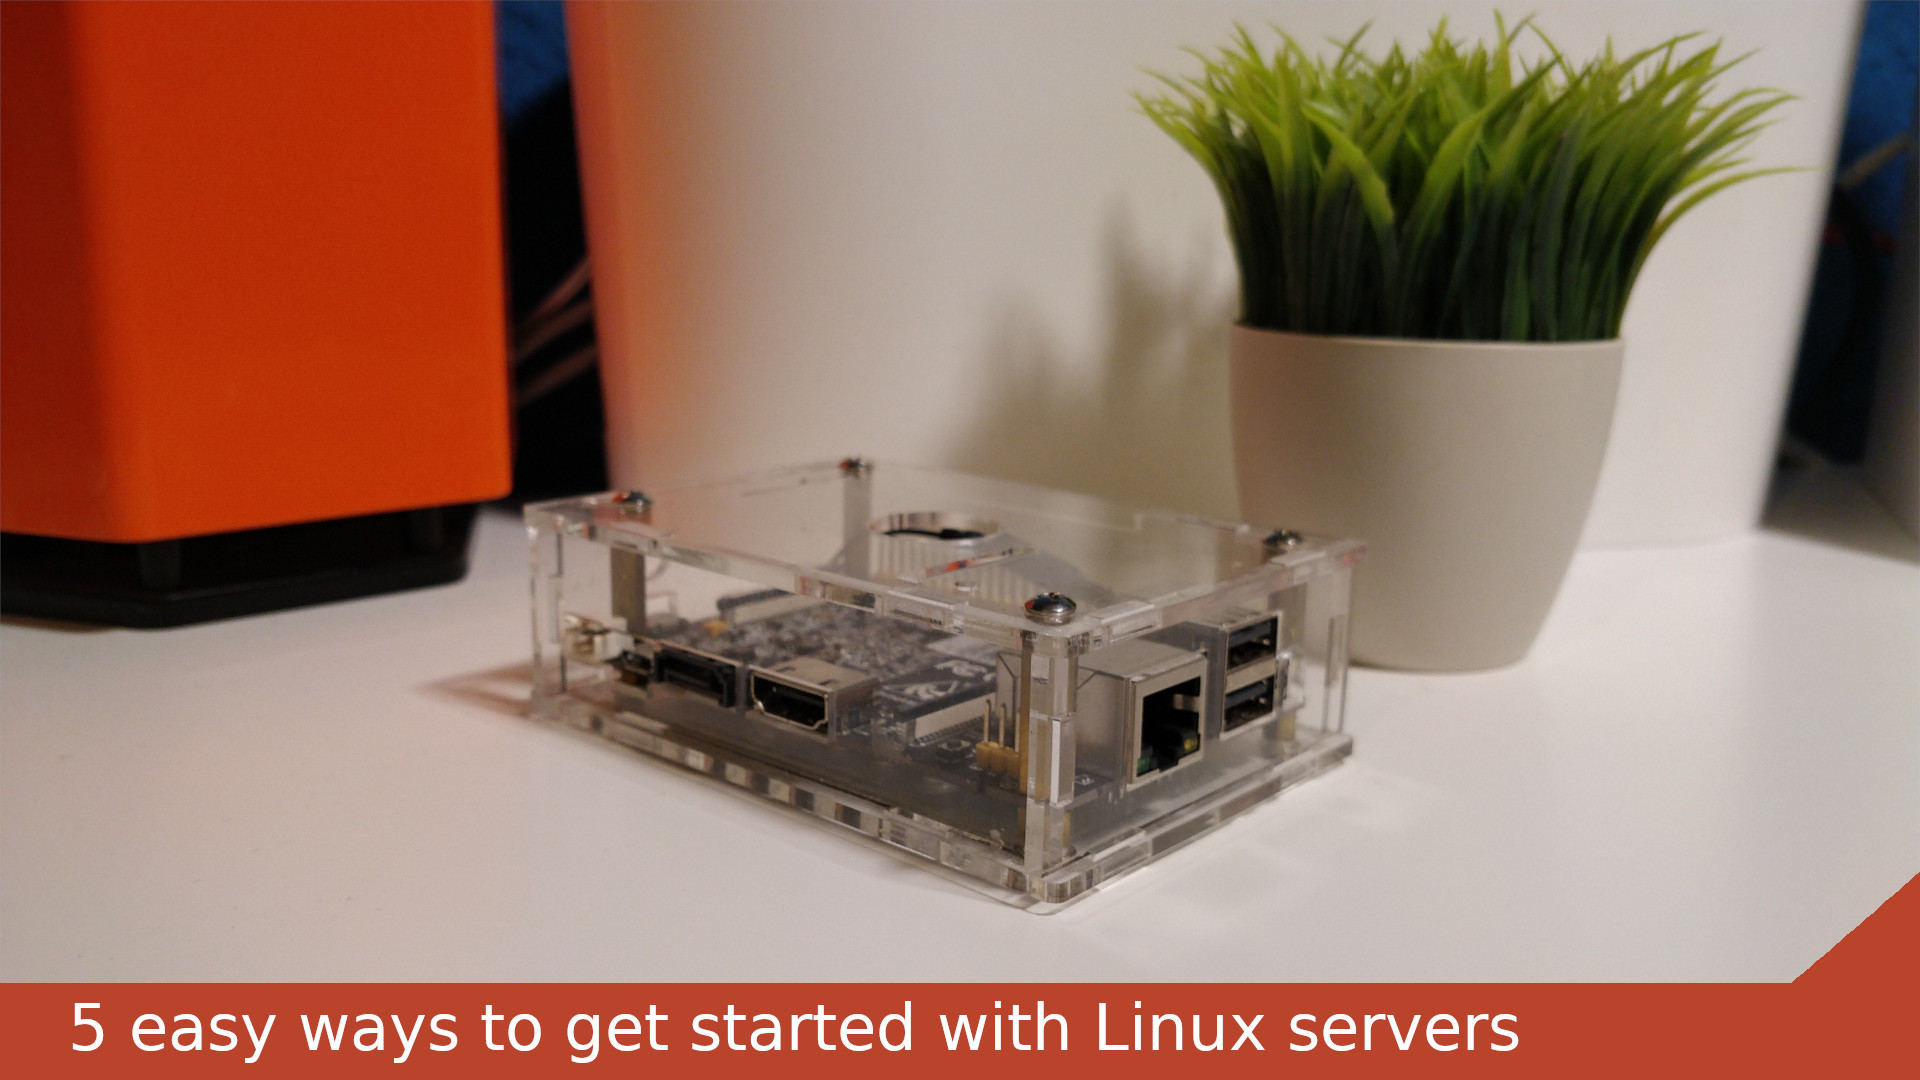 5 easy ways to get started with Linux servers without a homelab cover image